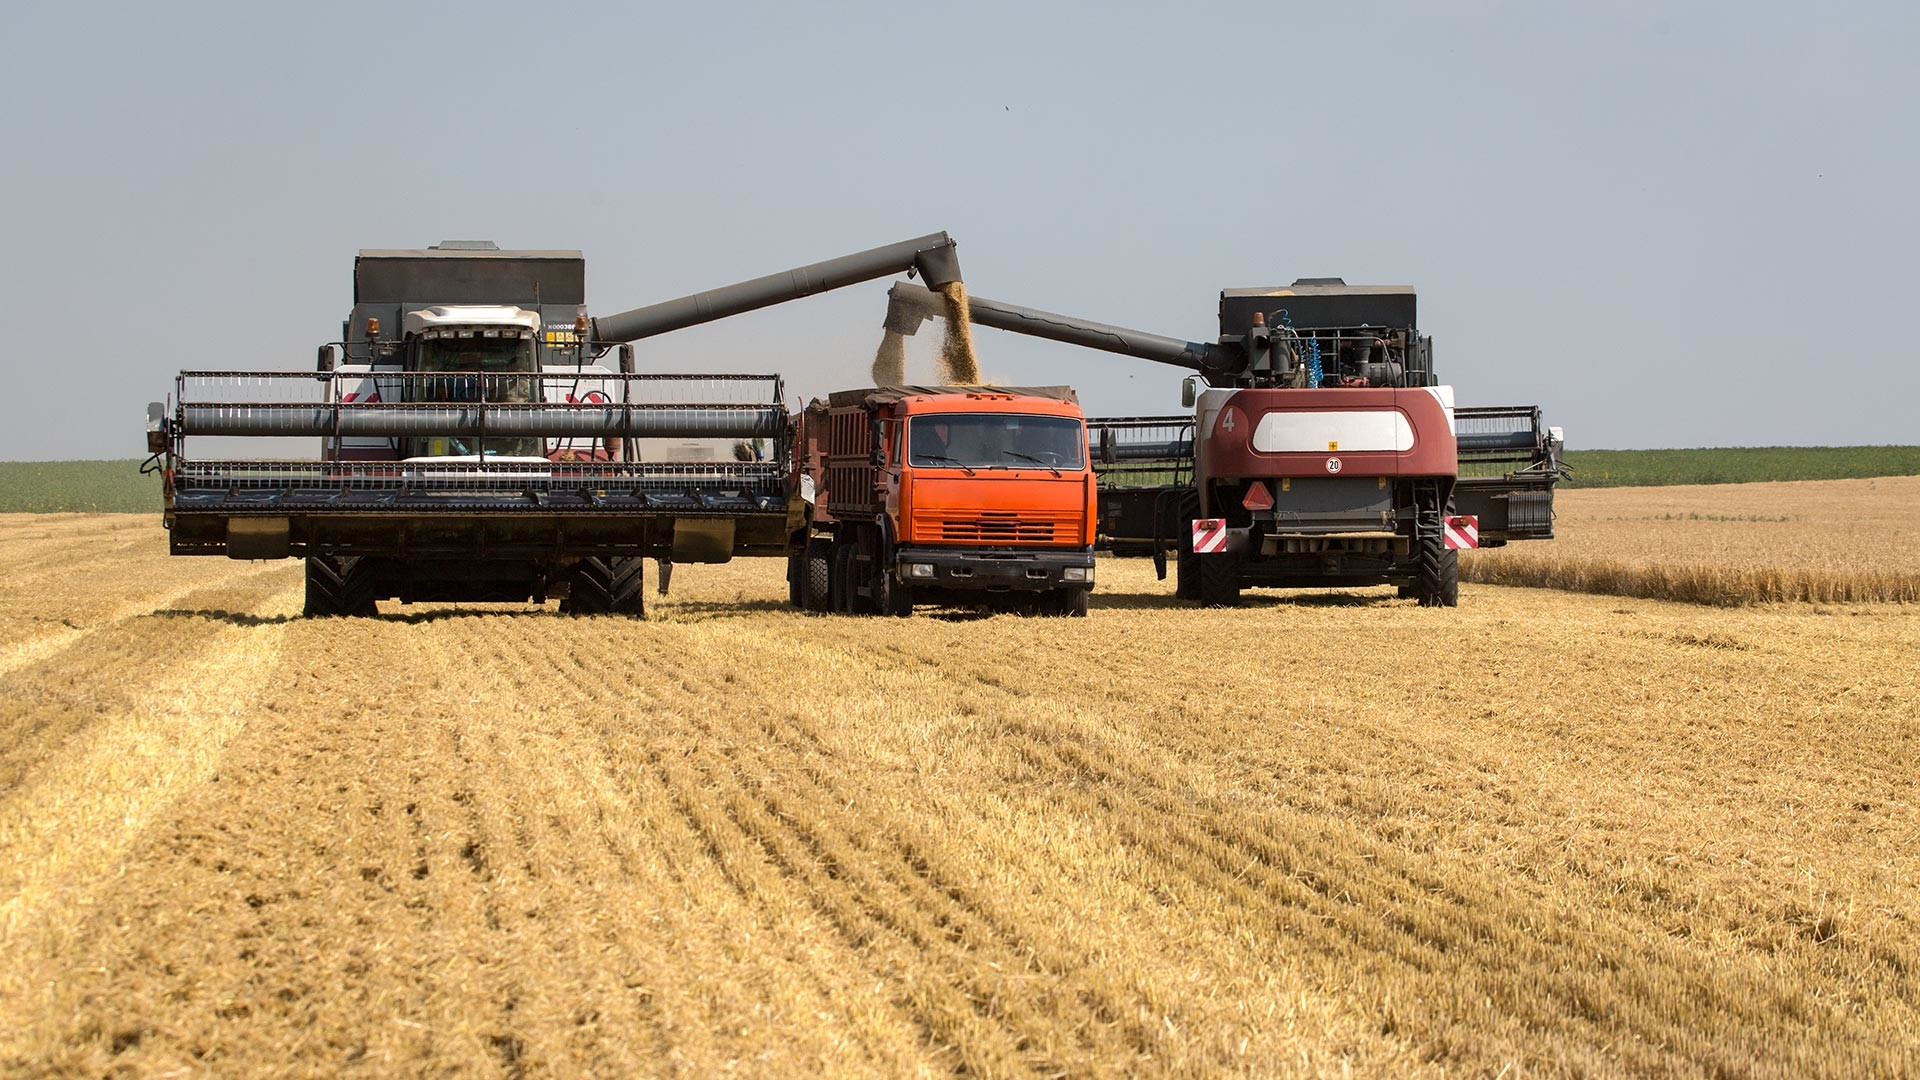 Harvesting combines in a wheat field.